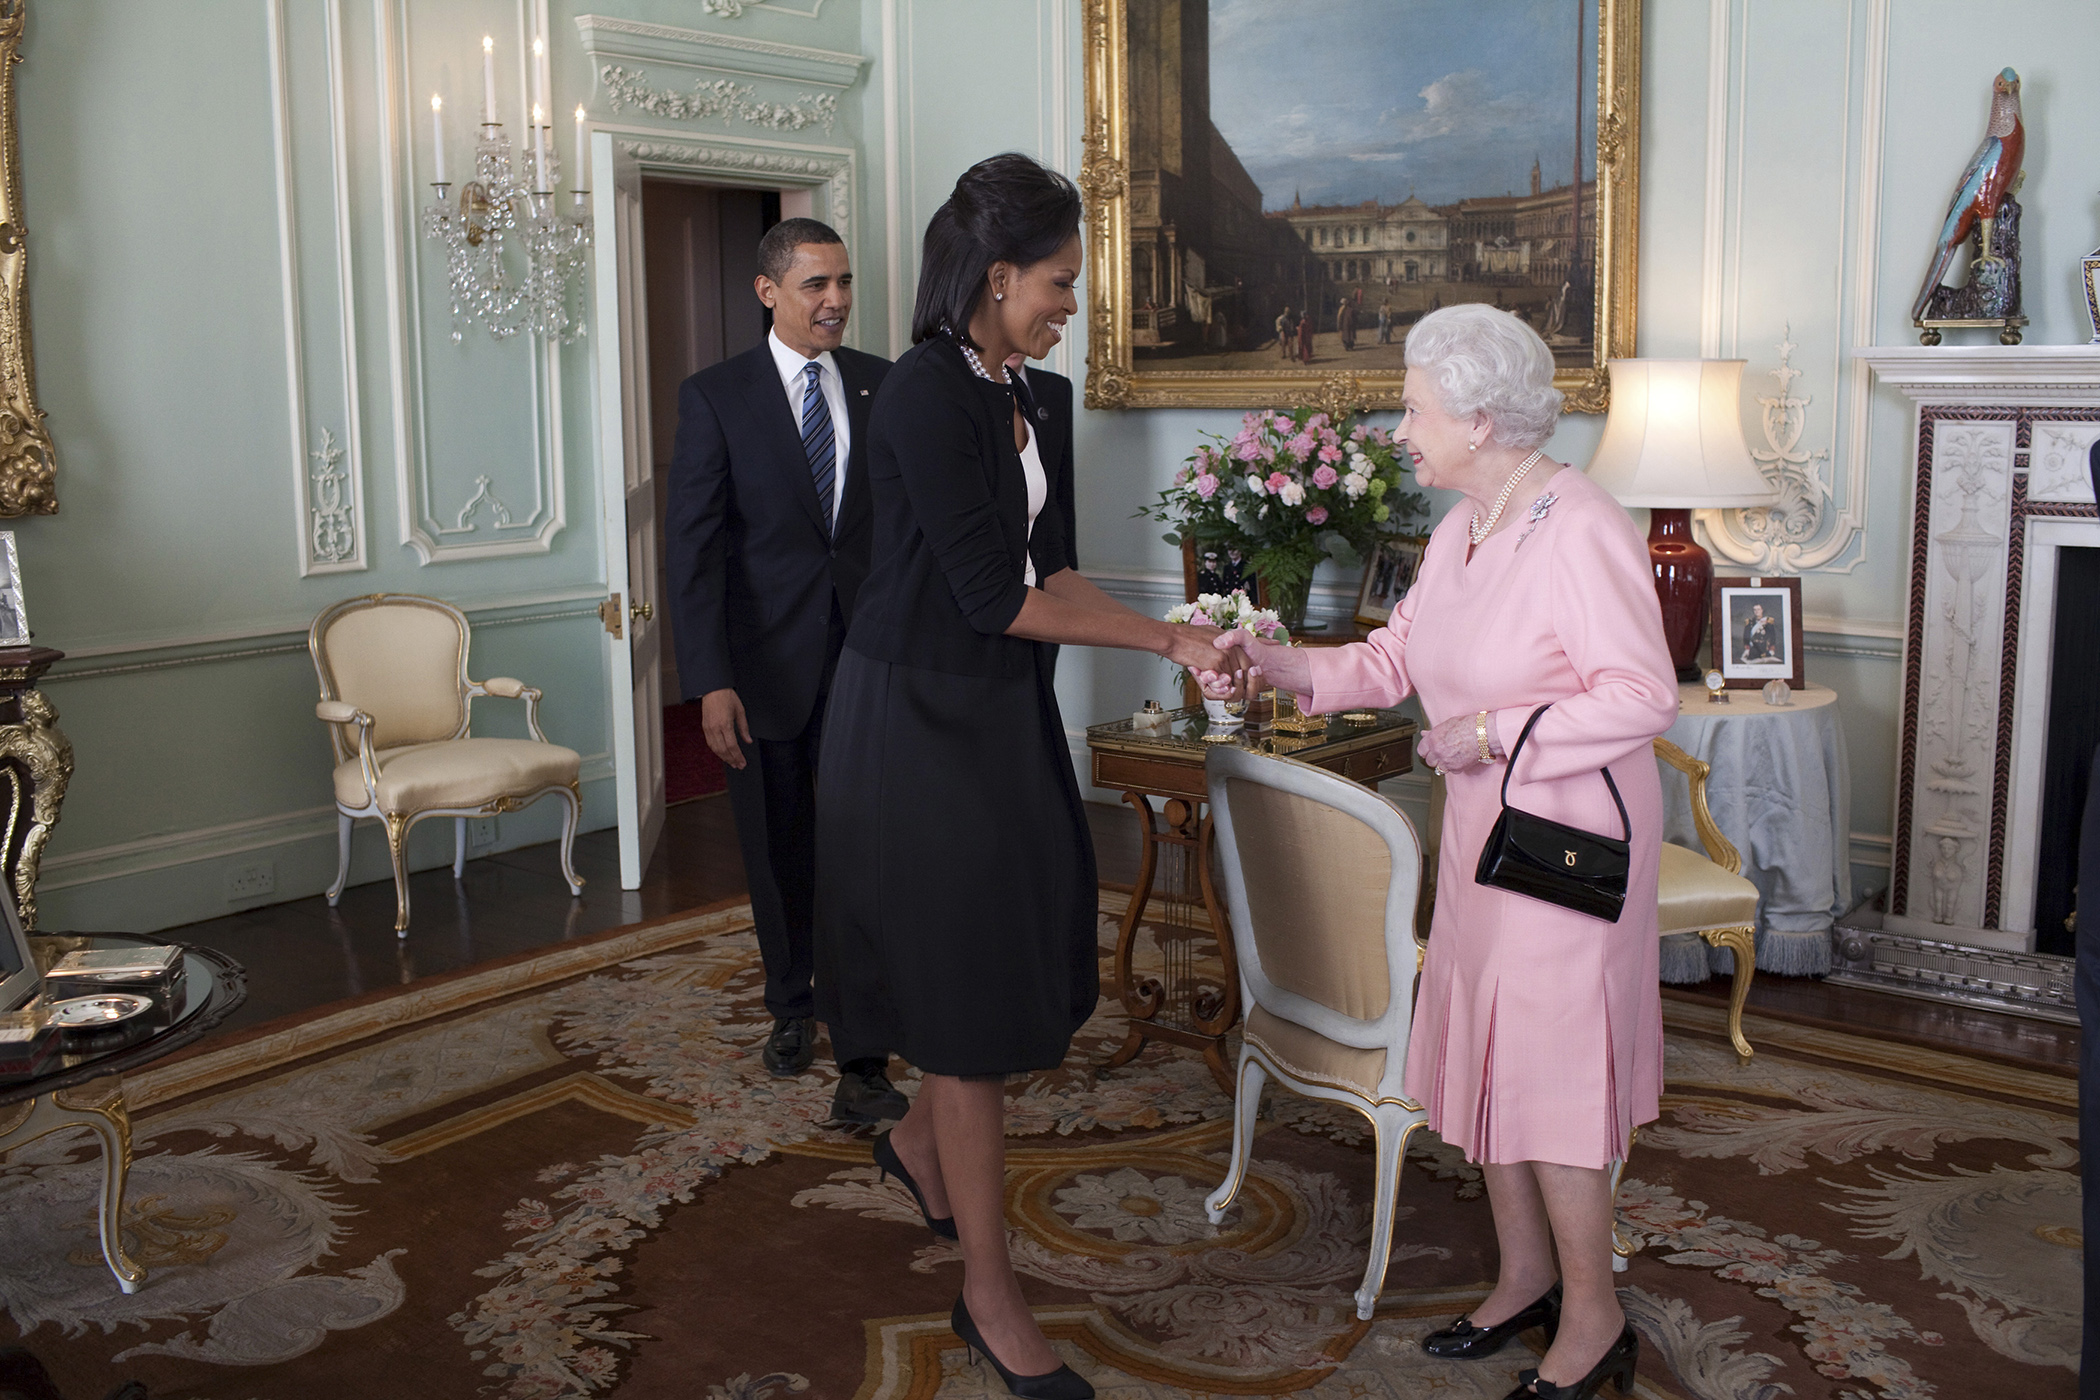 President Barack Obama and First Lady Michelle Obama are welcomed by Her Majesty Queen Elizabeth II to Buckingham Palace in London, April 1, 2009.